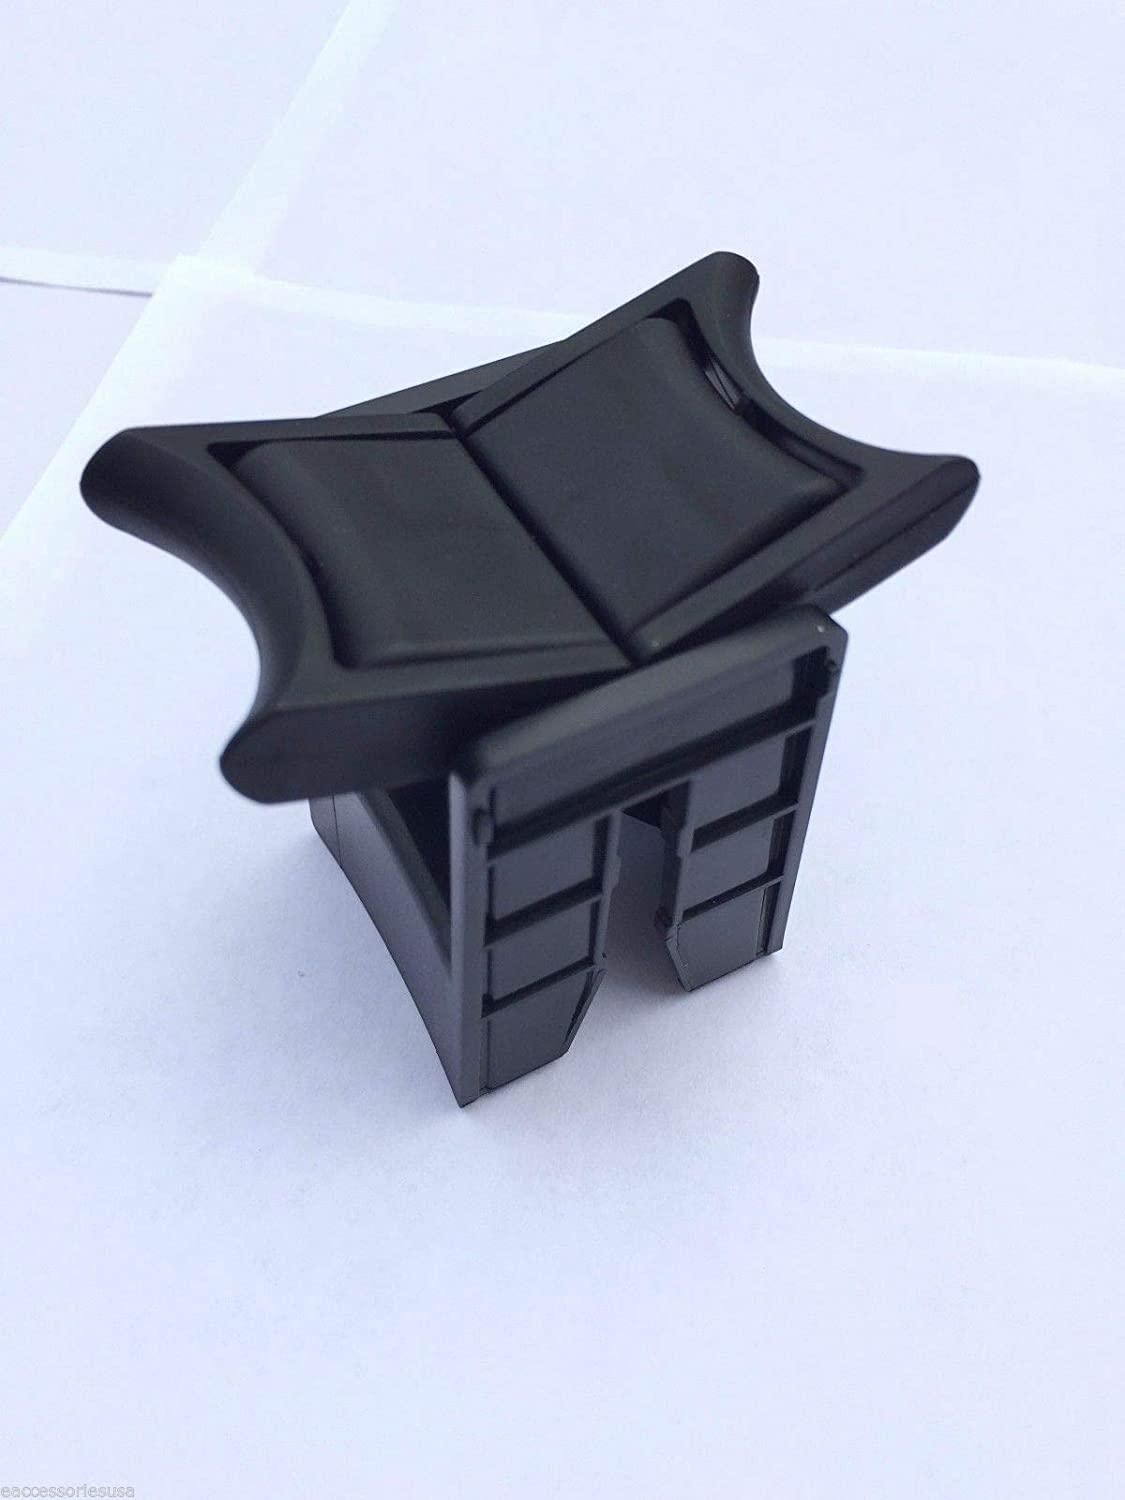 Trunknets Inc Cup Holder Insert for Toyota Camry Fits 2012 2013 2014 2015 2016 2017 New